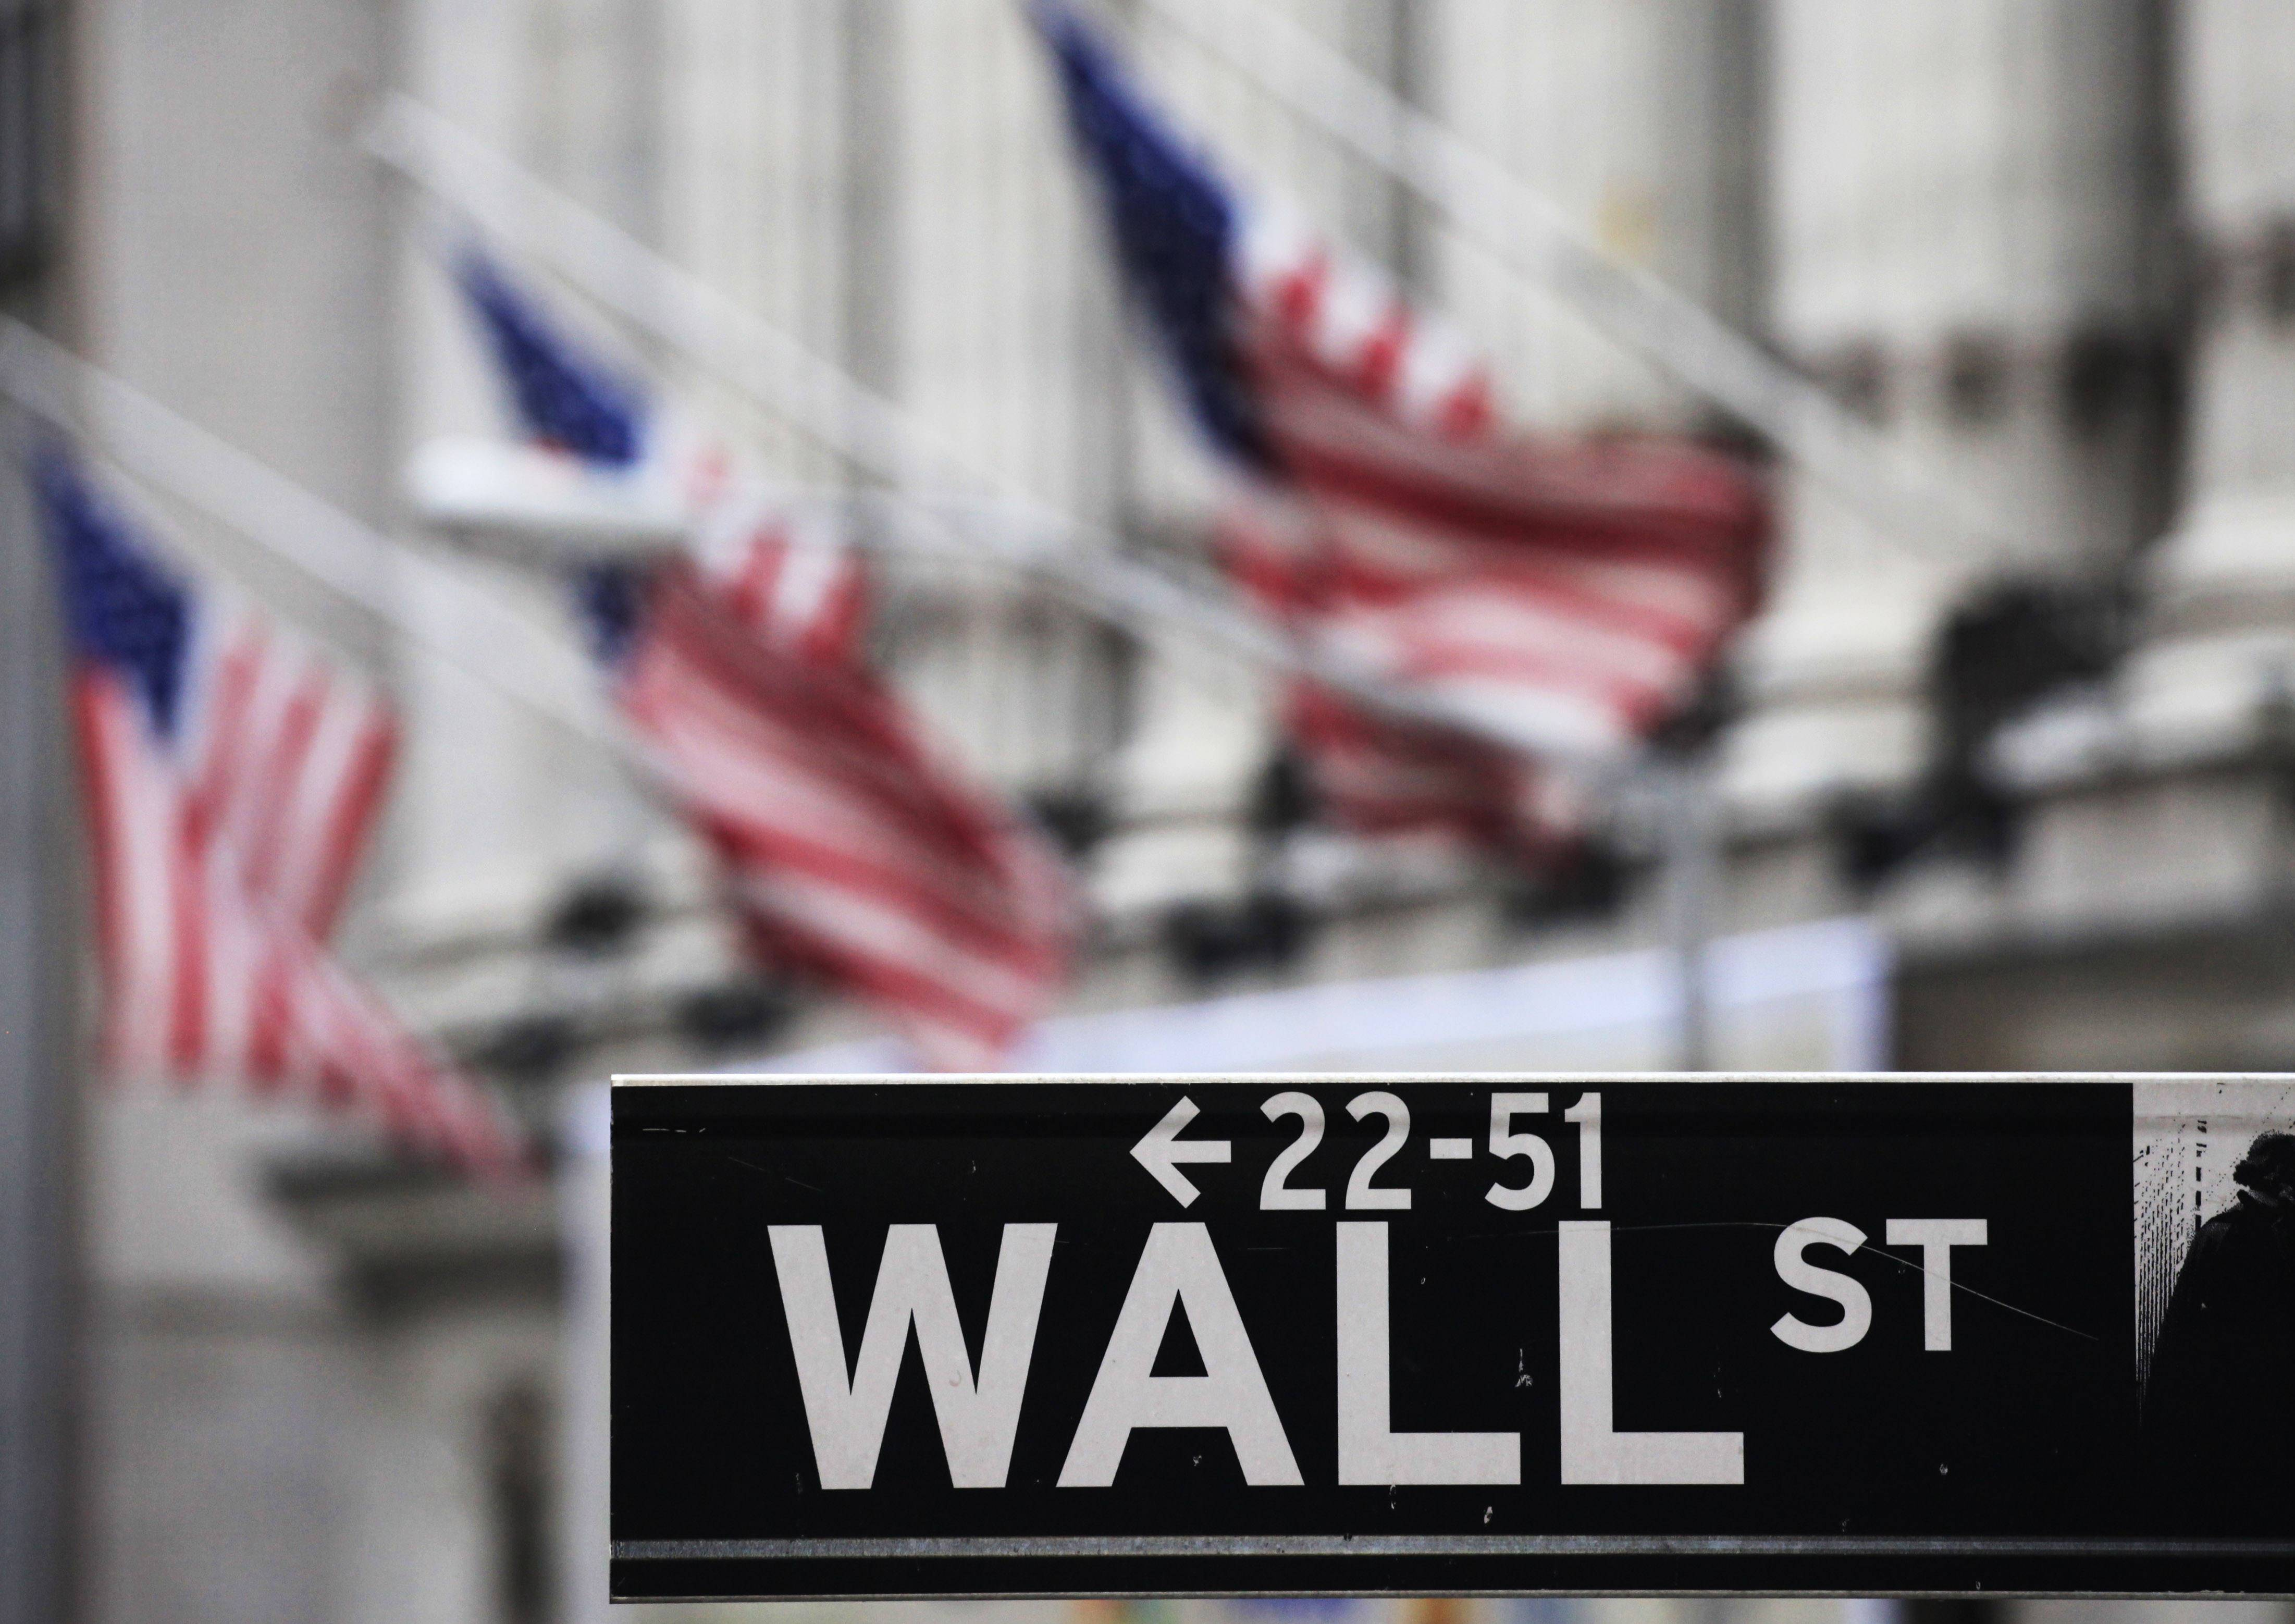 Stocks flickered between small gains and losses on Monday, keeping major indexes close to record levels, as investors assessed the latest data on housing. After a weak start to the year, the stock market closed out the second quarter regaining its upward momentum after a weak start to the year.